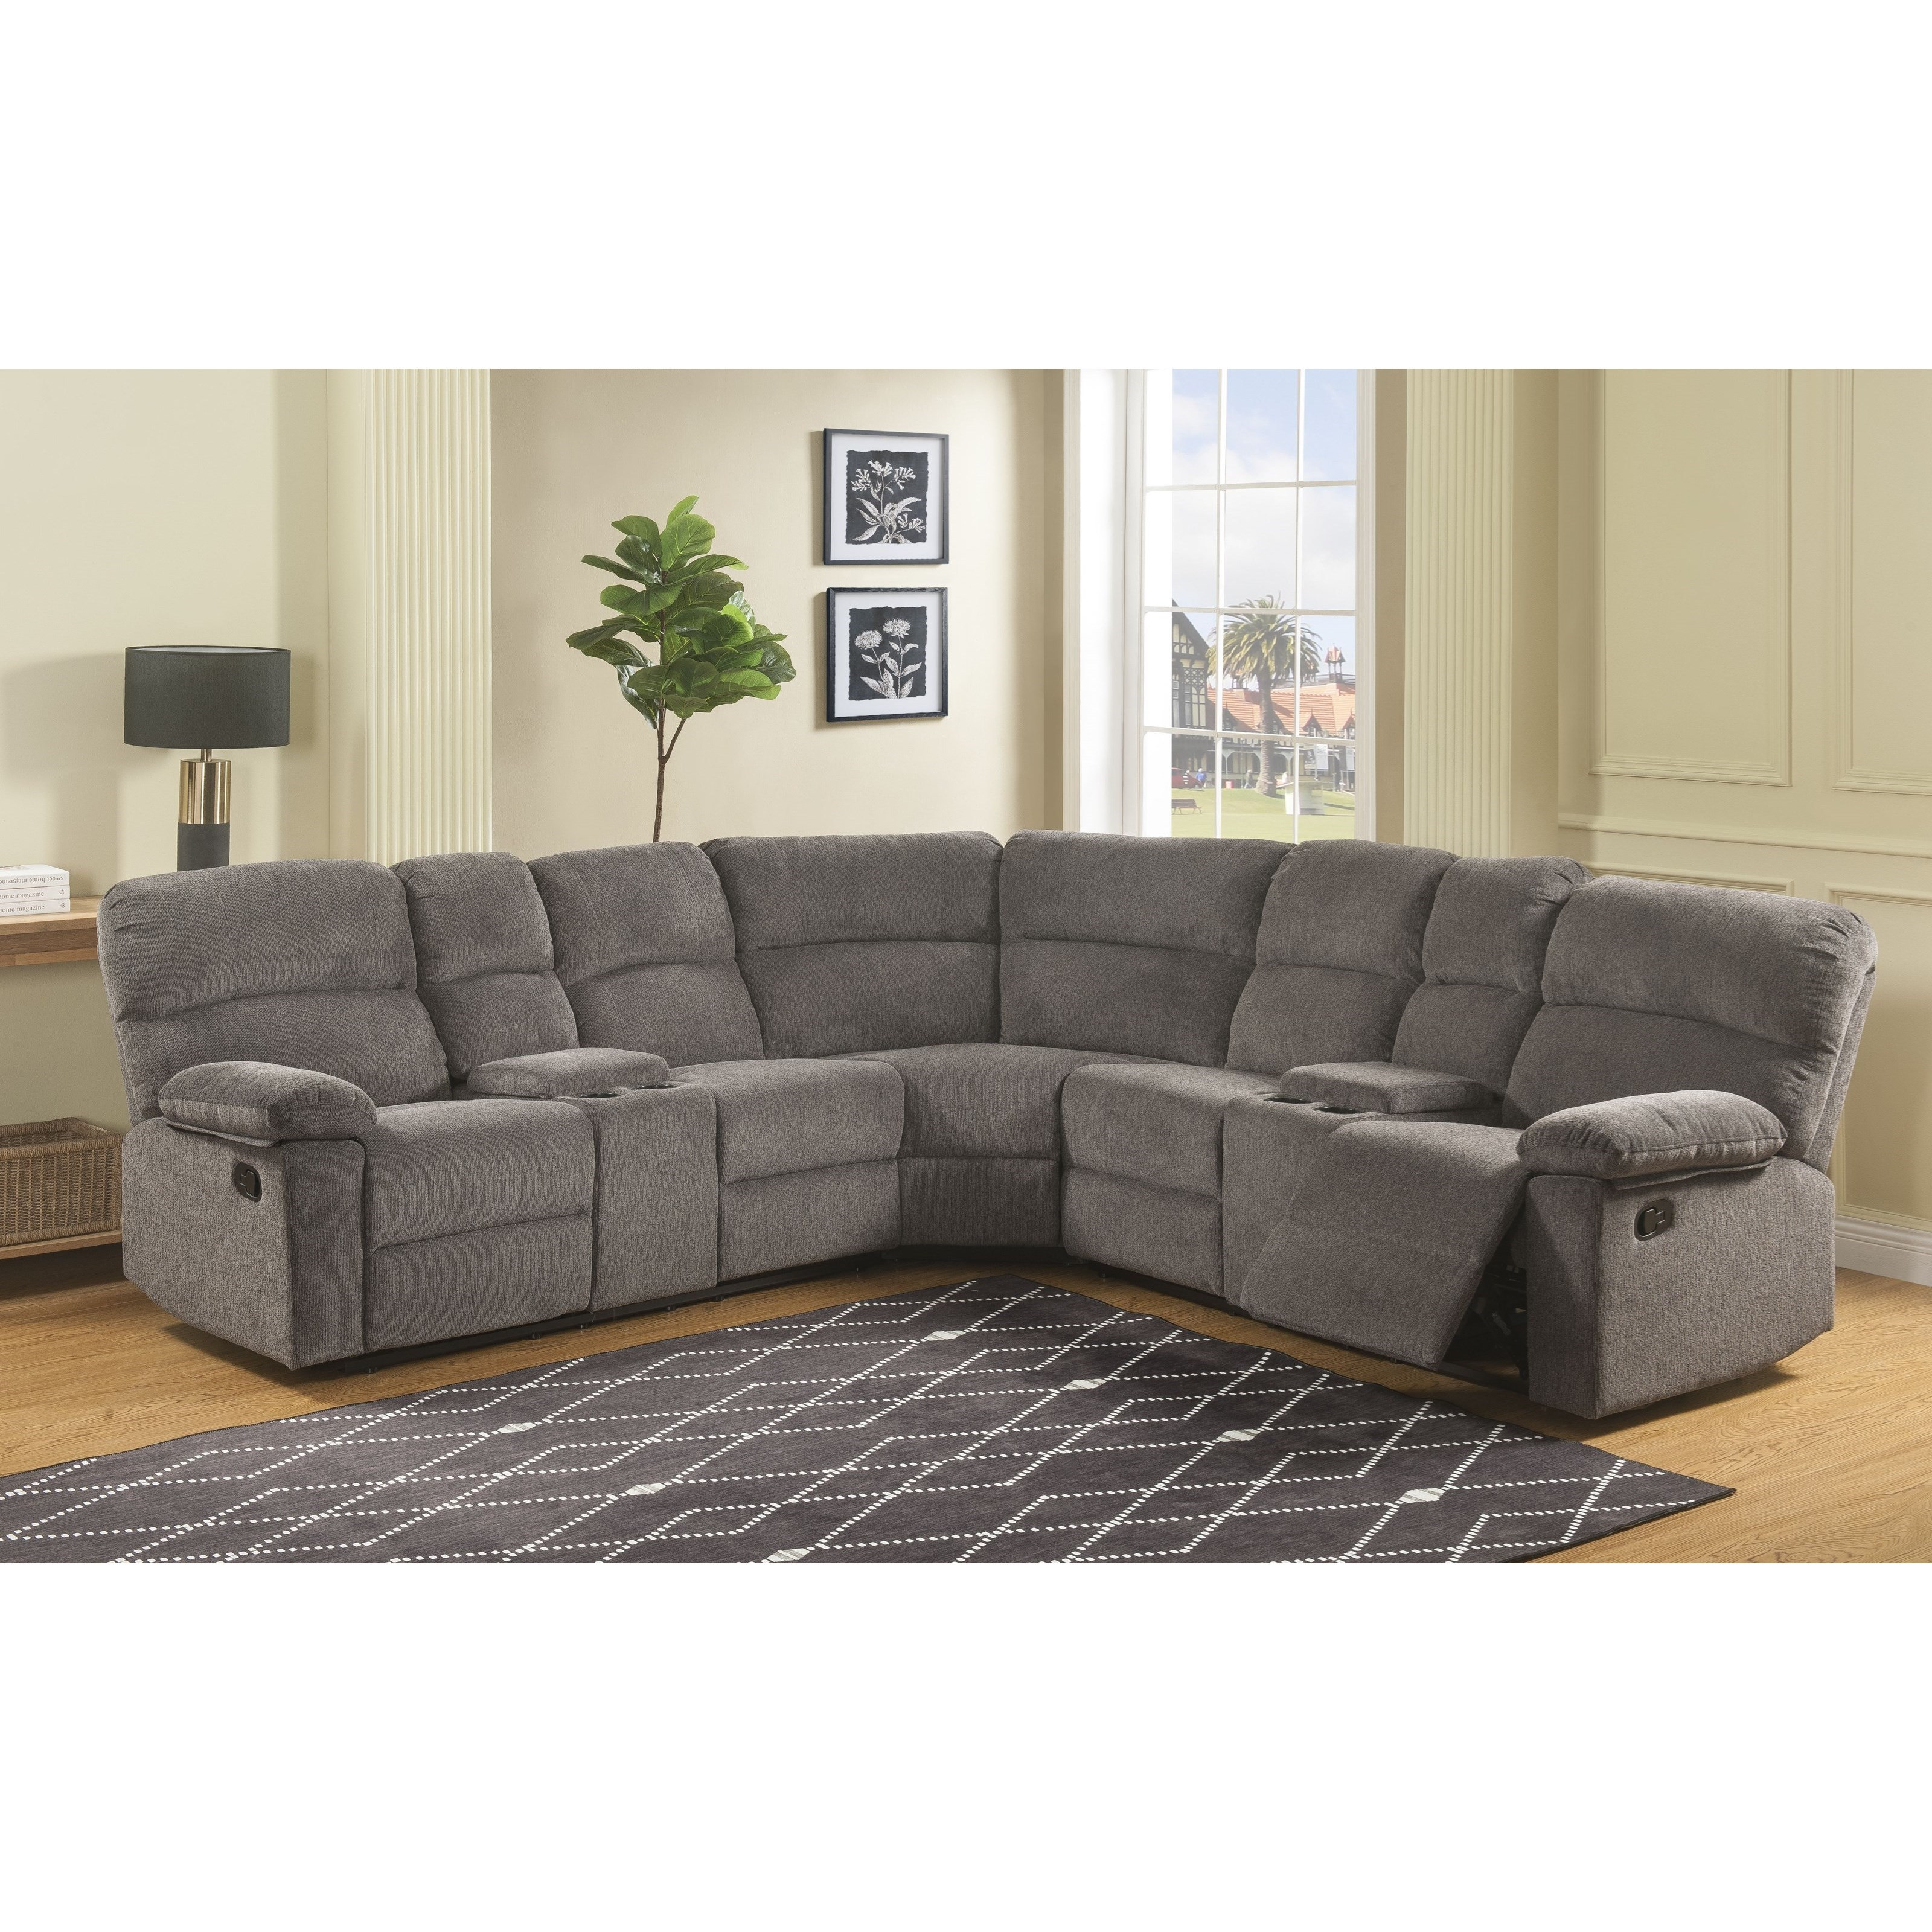 Four Seat Reclining Sectional Sofa